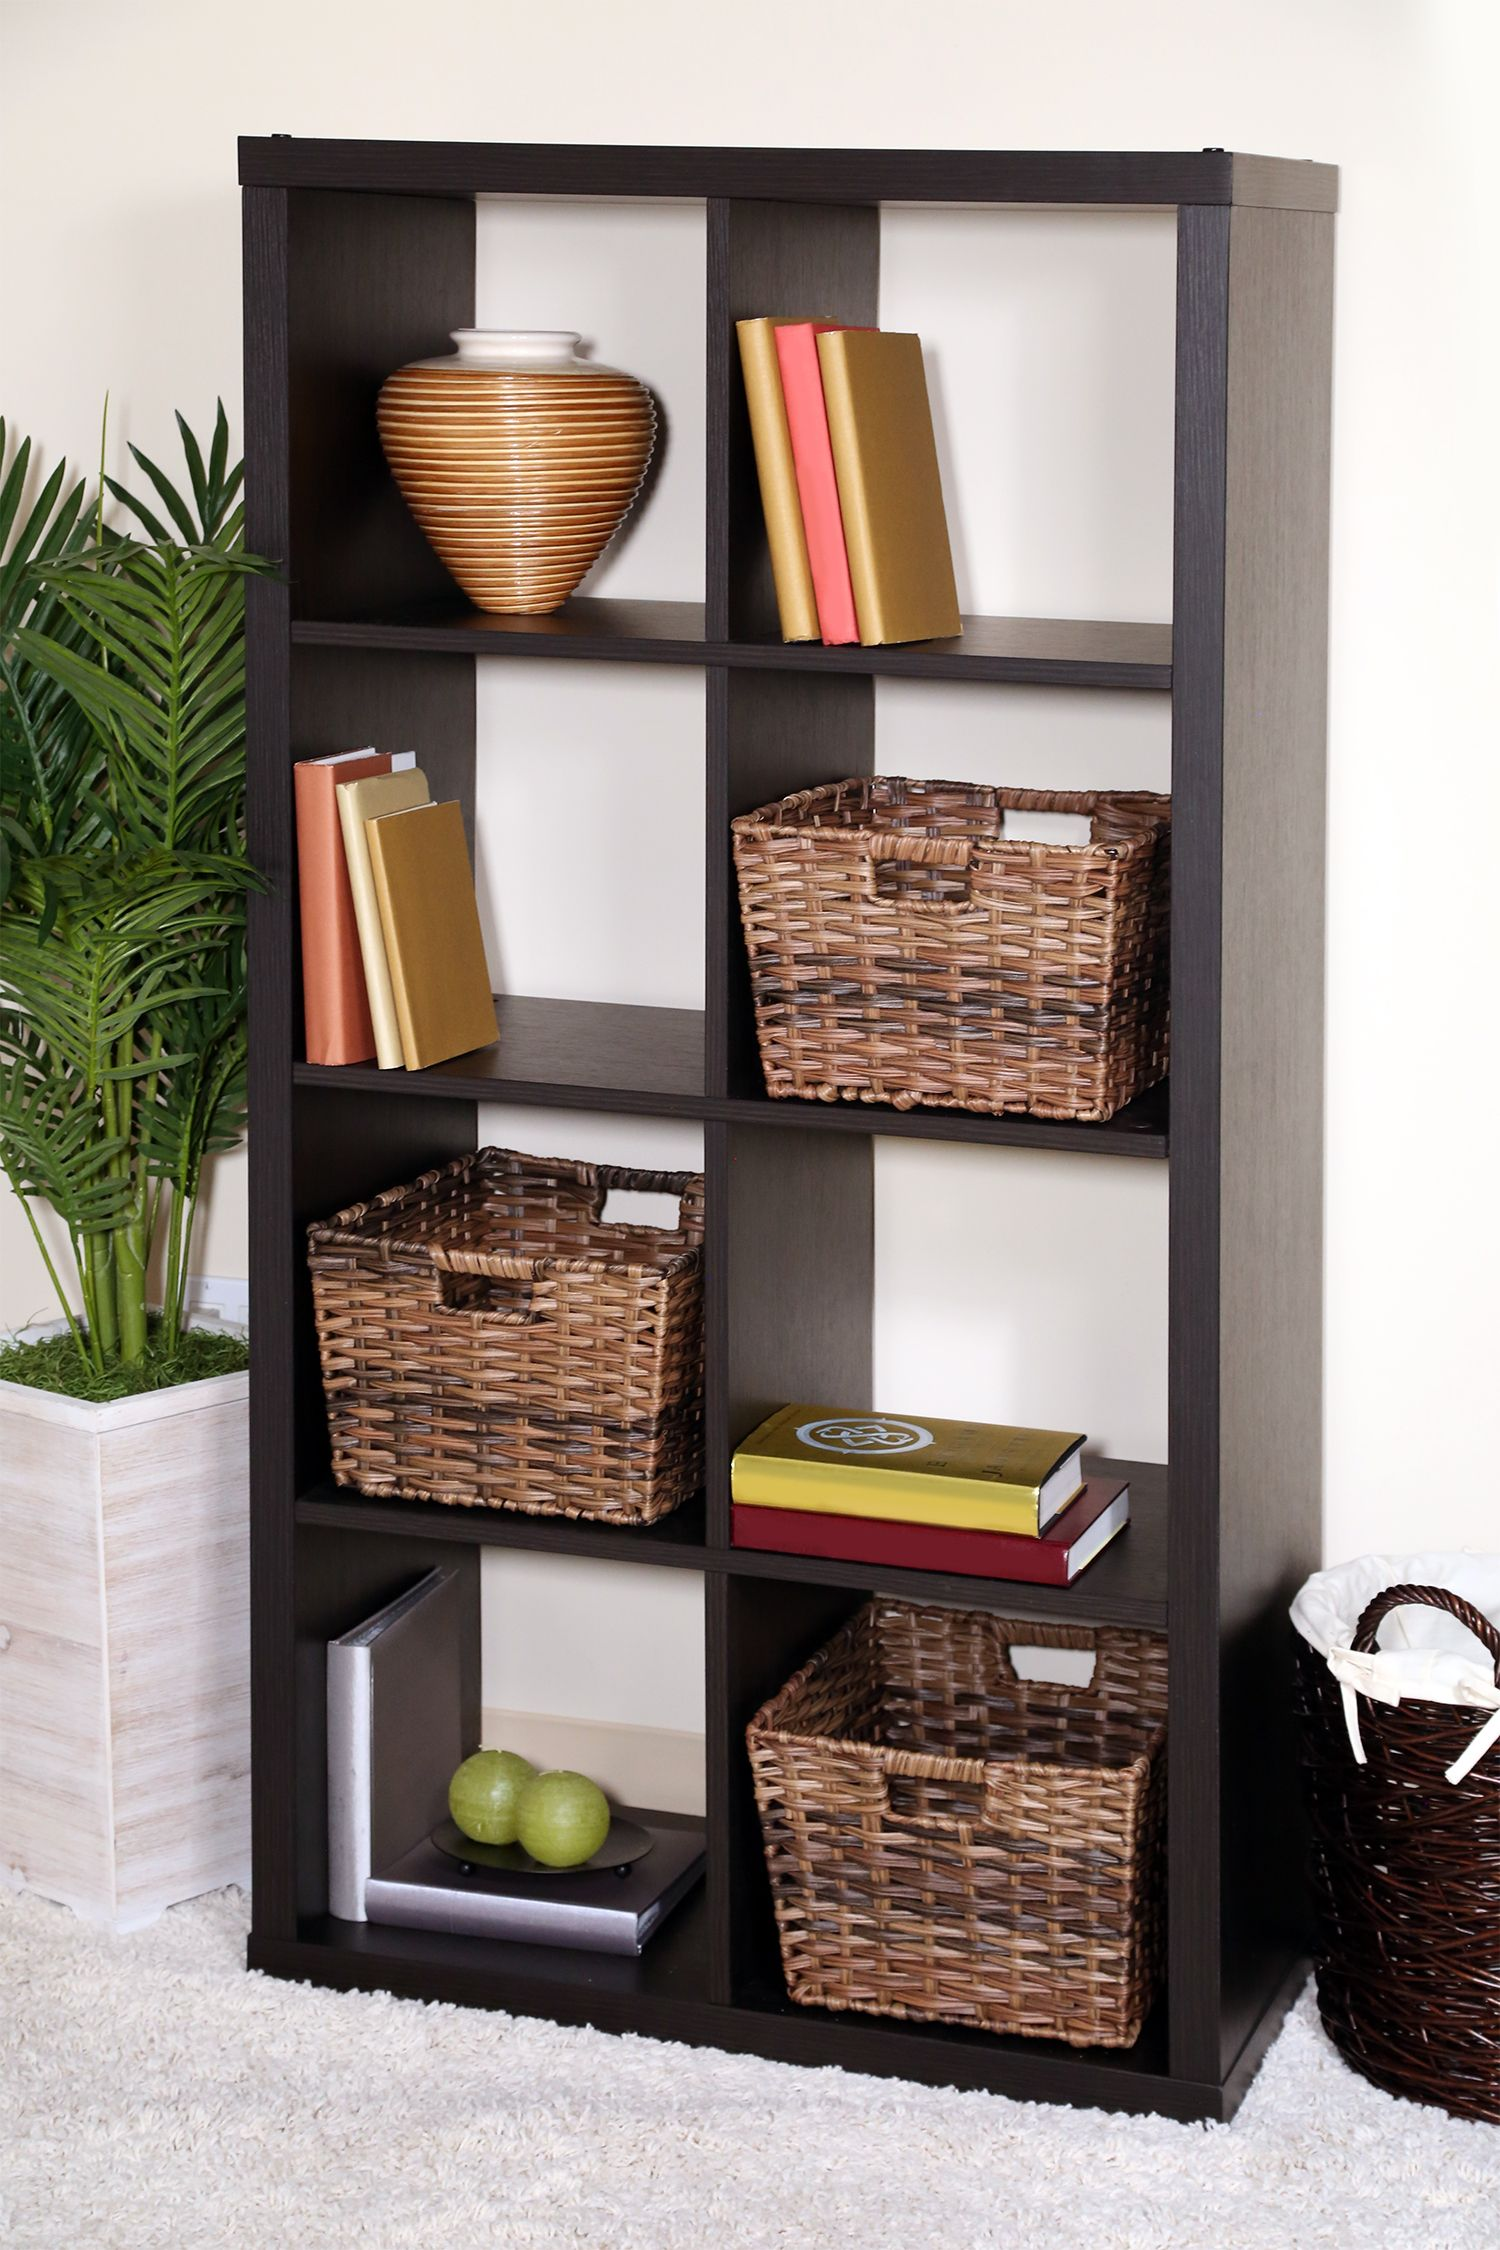 Organize Your Shelves And Storage With The Seville Classics Decorative Woven  Storage Baskets In Mocha.